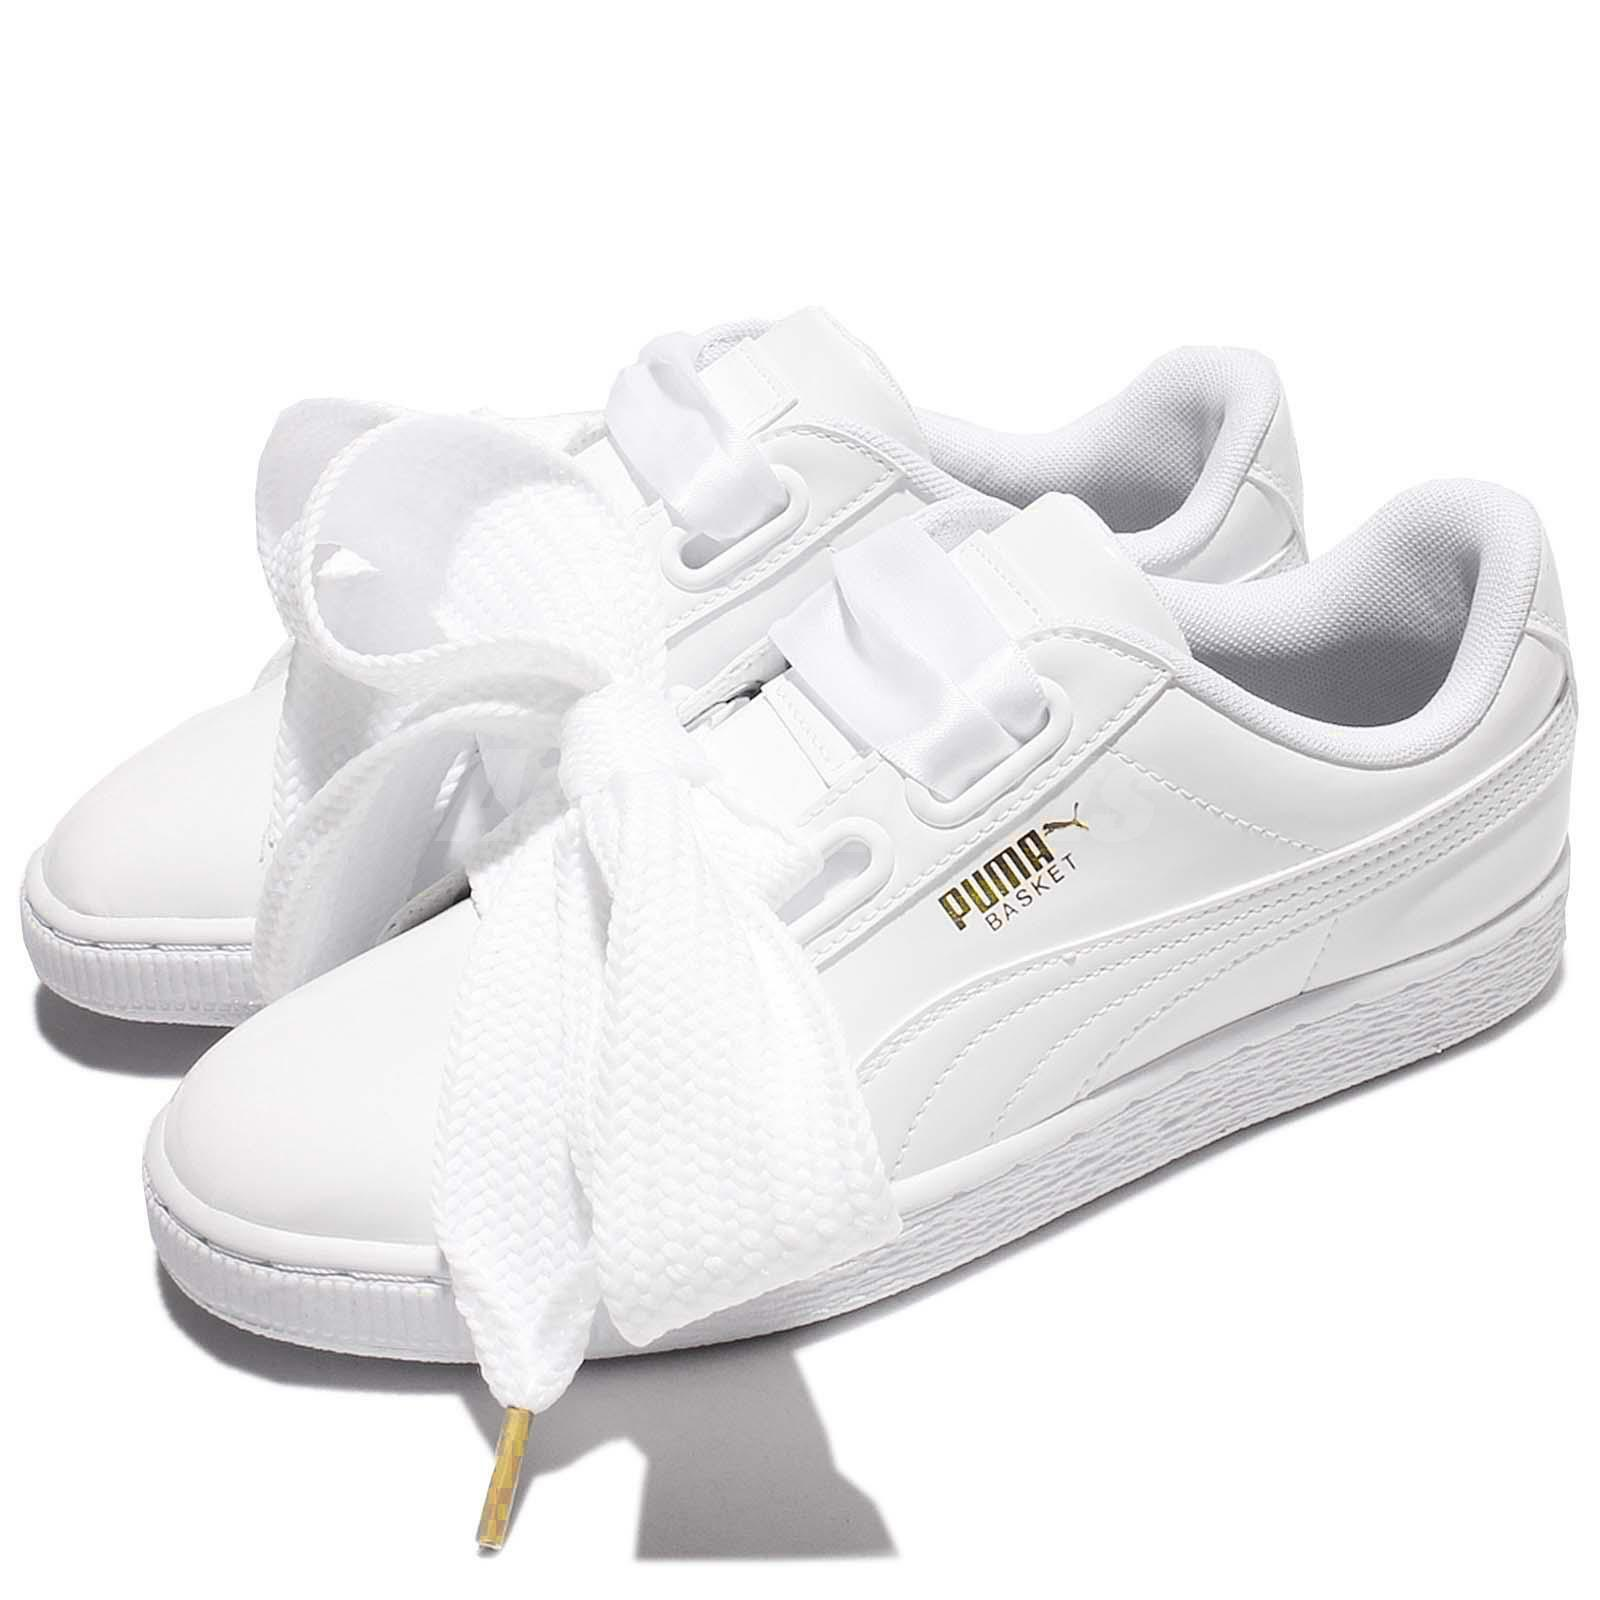 Puma Basket Heart Patent Wns Leather White Donna Shoes Scarpe da Ginnastica 363073-02